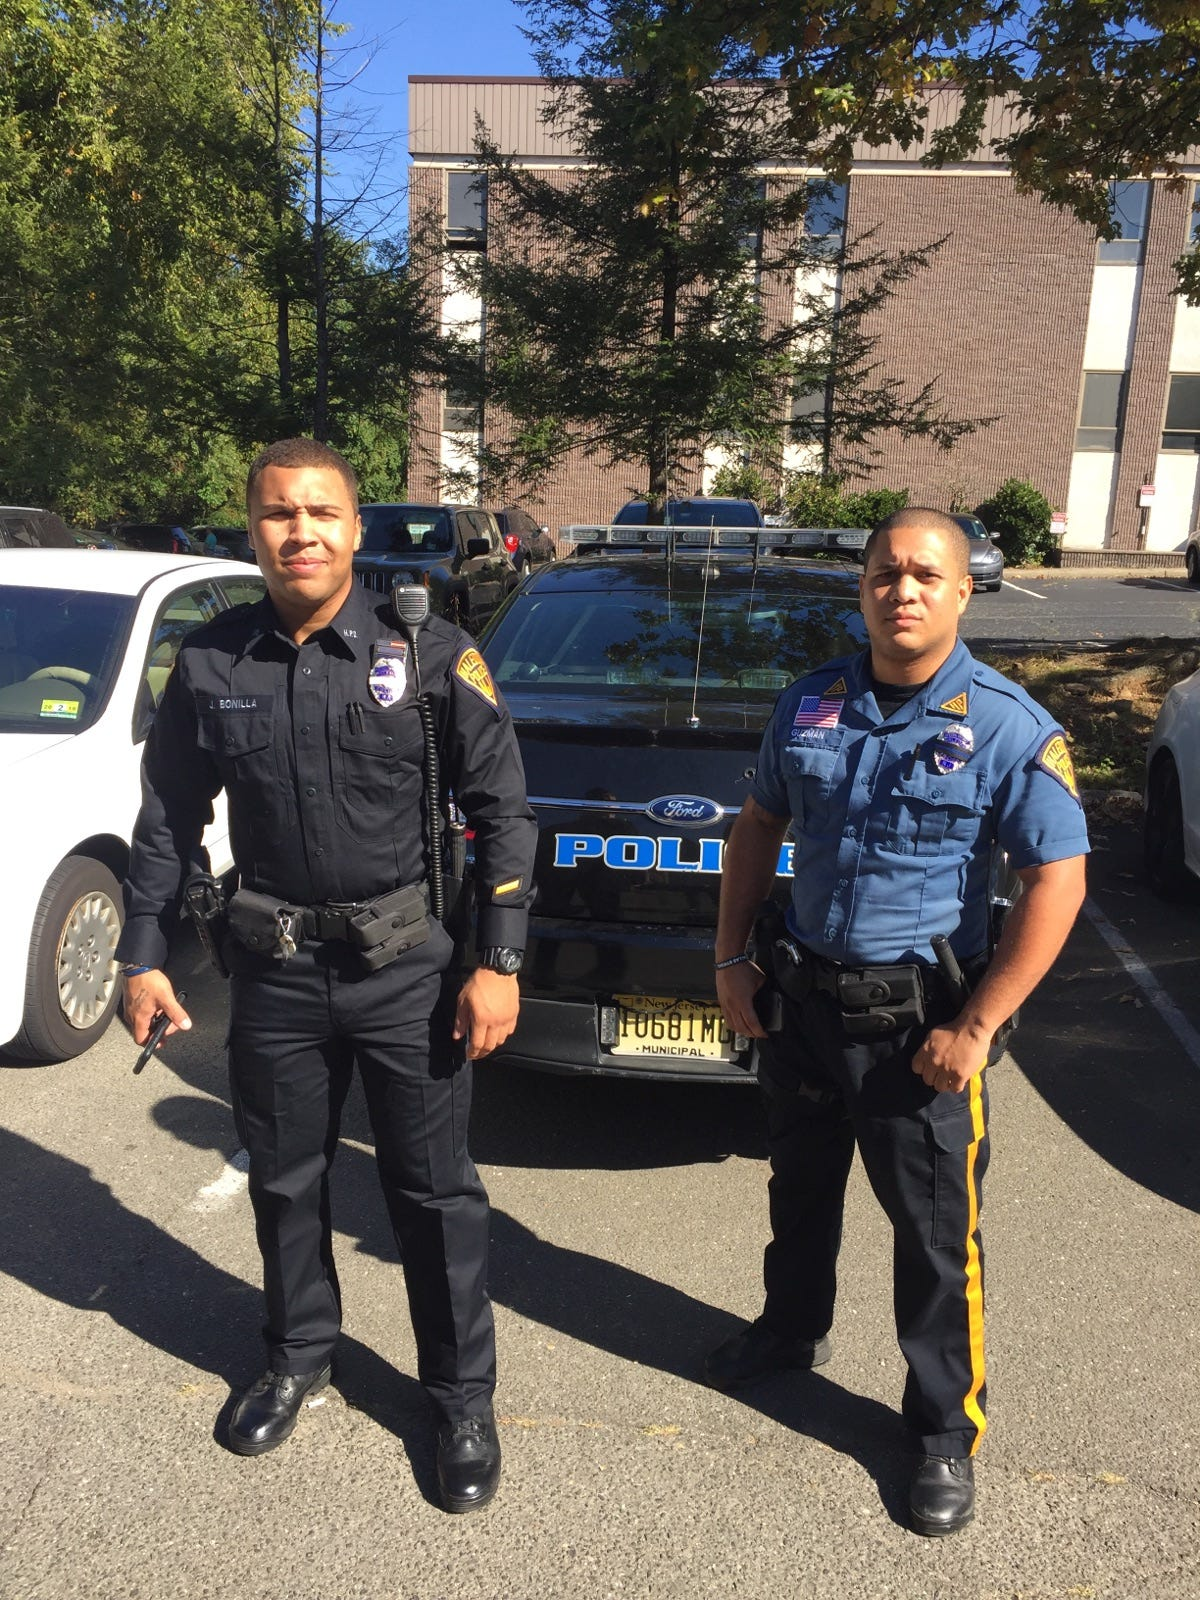 Haledon police out with the old, in with the new uniforms